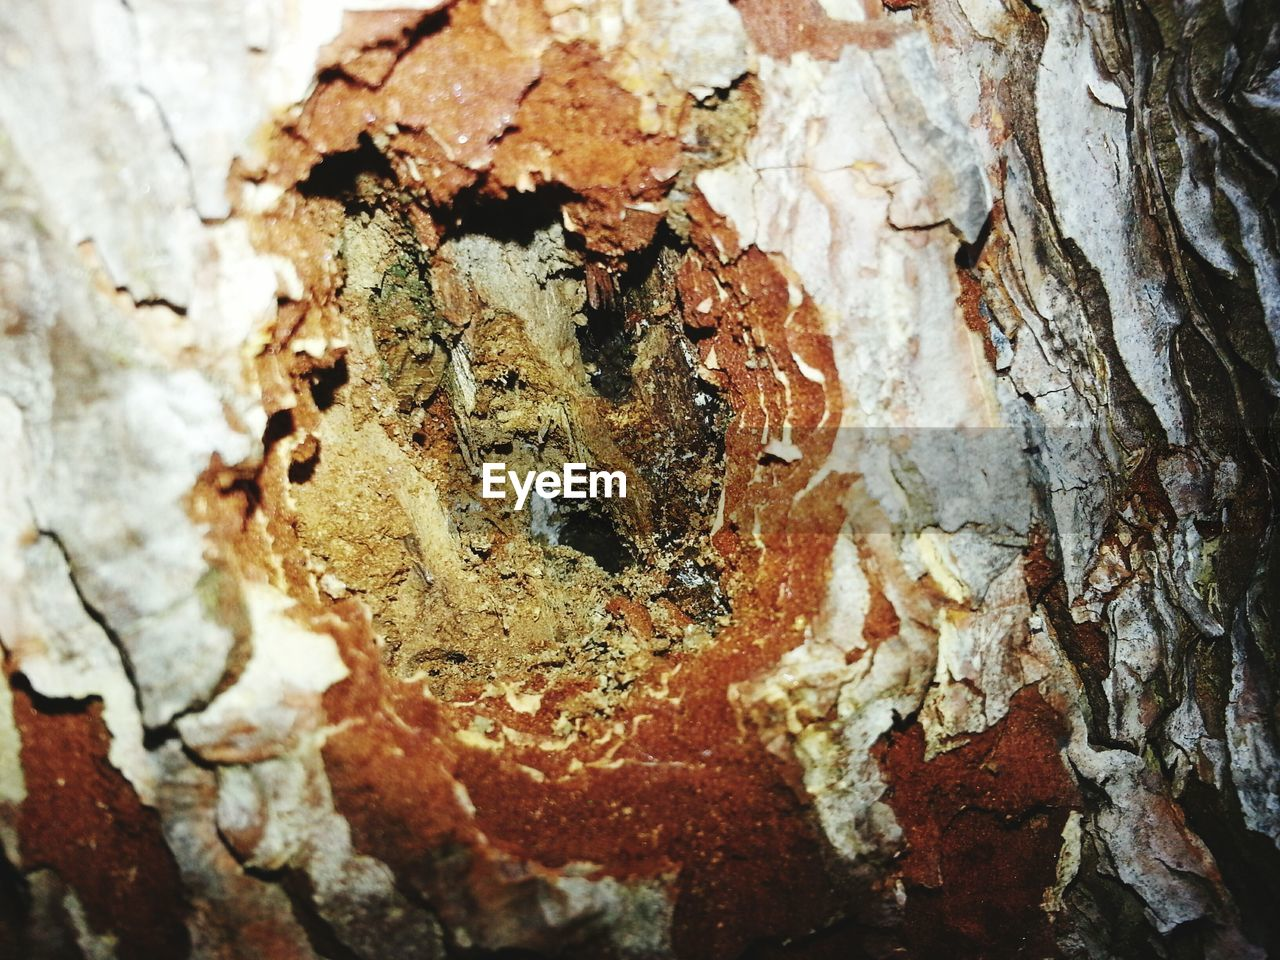 close-up, textured, no people, tree trunk, day, nature, outdoors, animal themes